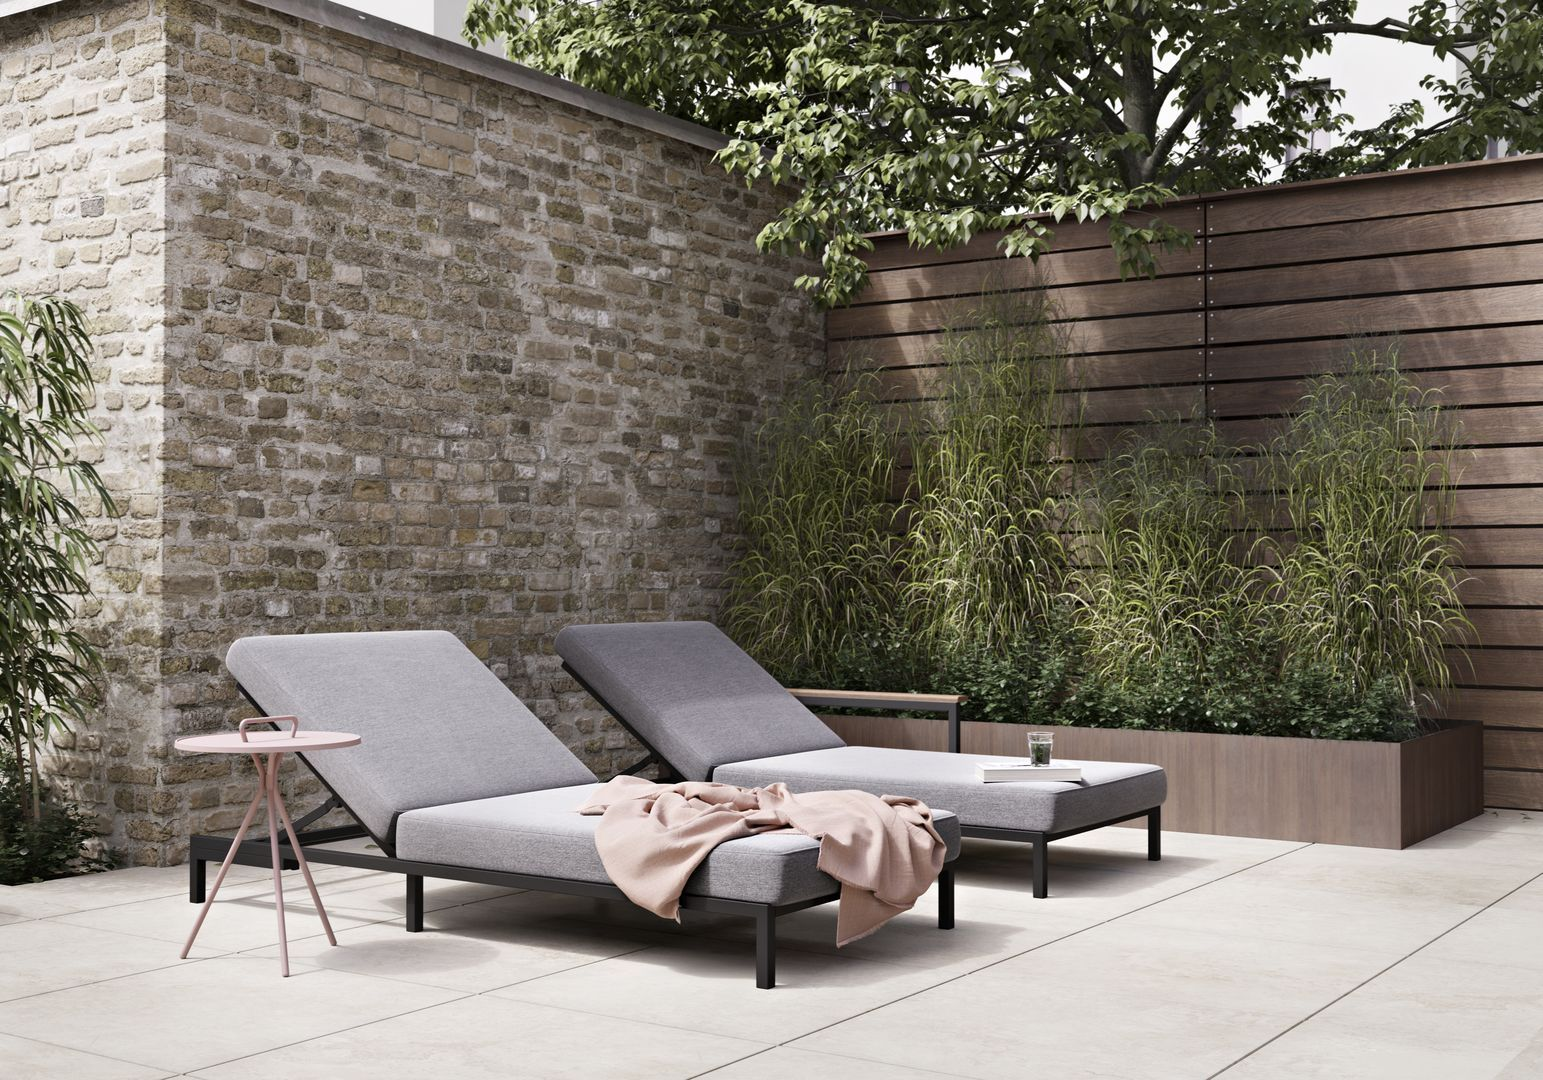 Modulare Sofas Rome Liegestuhl Ohne Armlehne Outdoor Living Design Outdoor Dining Furniture Outdoor Living Room